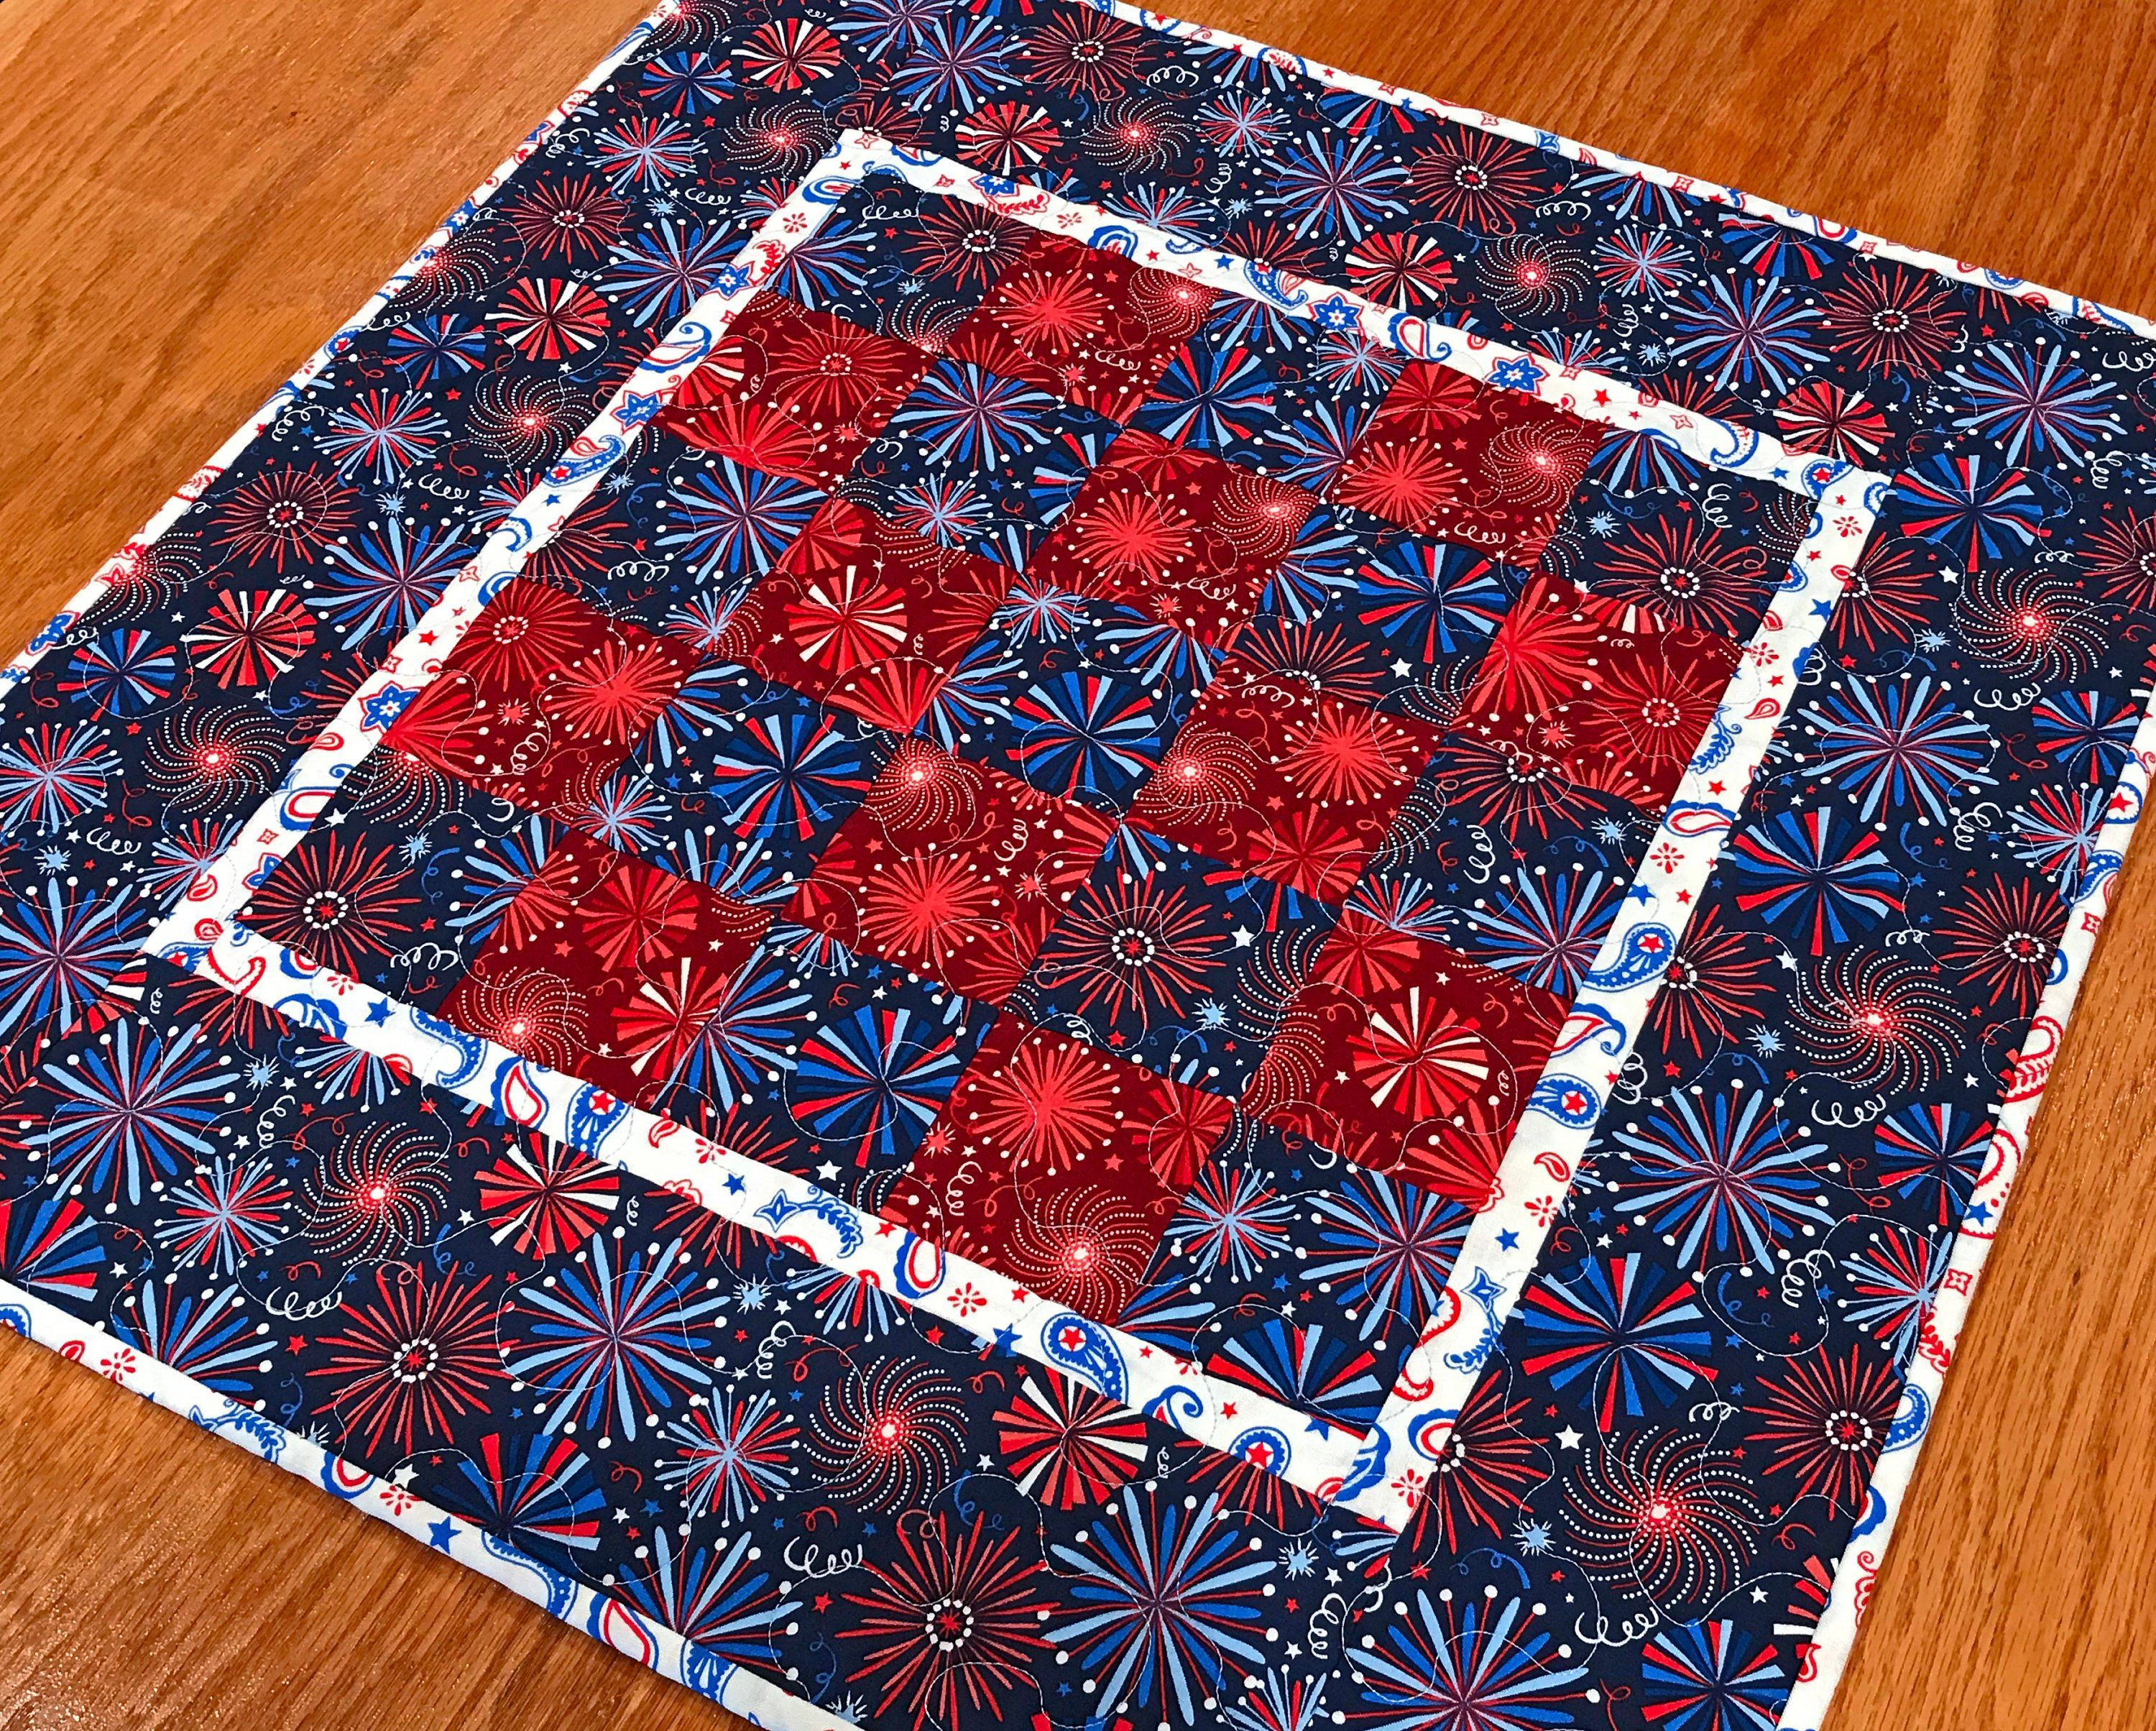 Patriotic Quilted Table Topper,Handmade 4th of July Centerpiece,4th of July Runner,Square Patriotic Table Topper,Red White Blue Table Topper